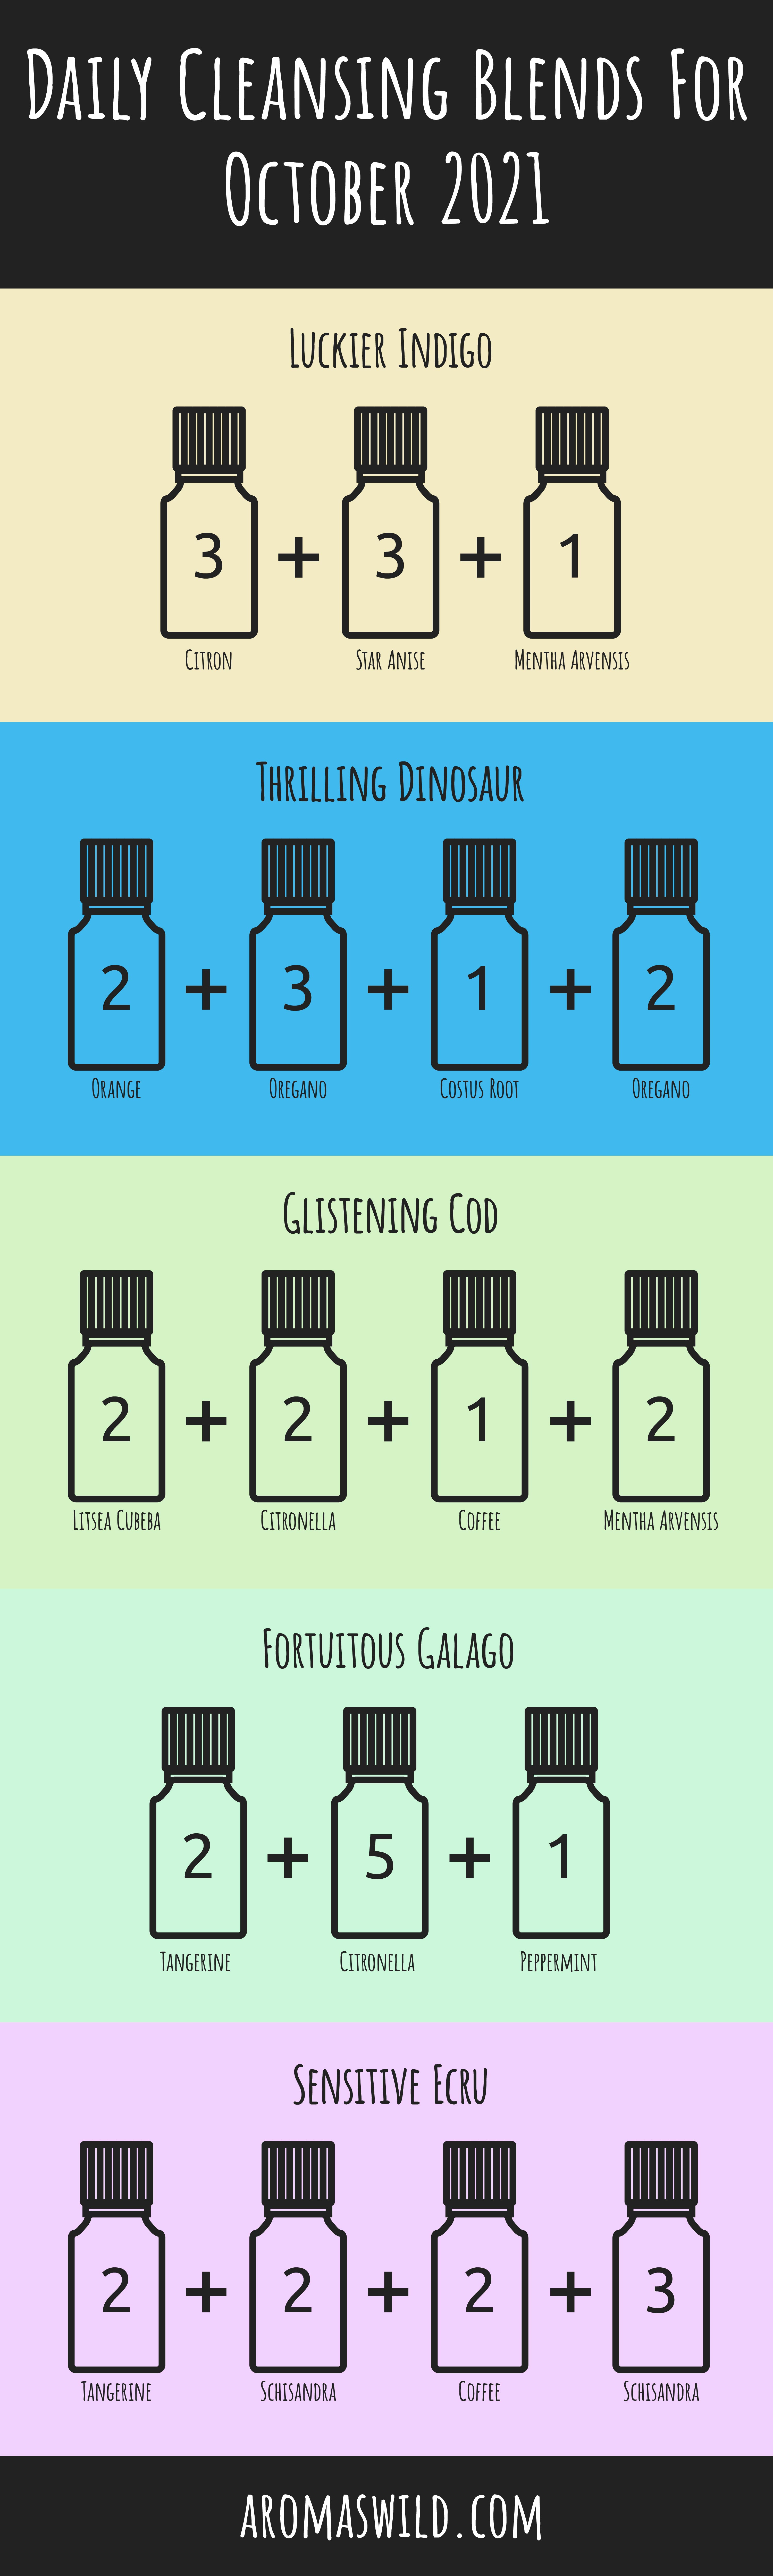 Air Cleanse Essential Oil For Cleansing – Daily Cleansing Blends For 14 October 2021